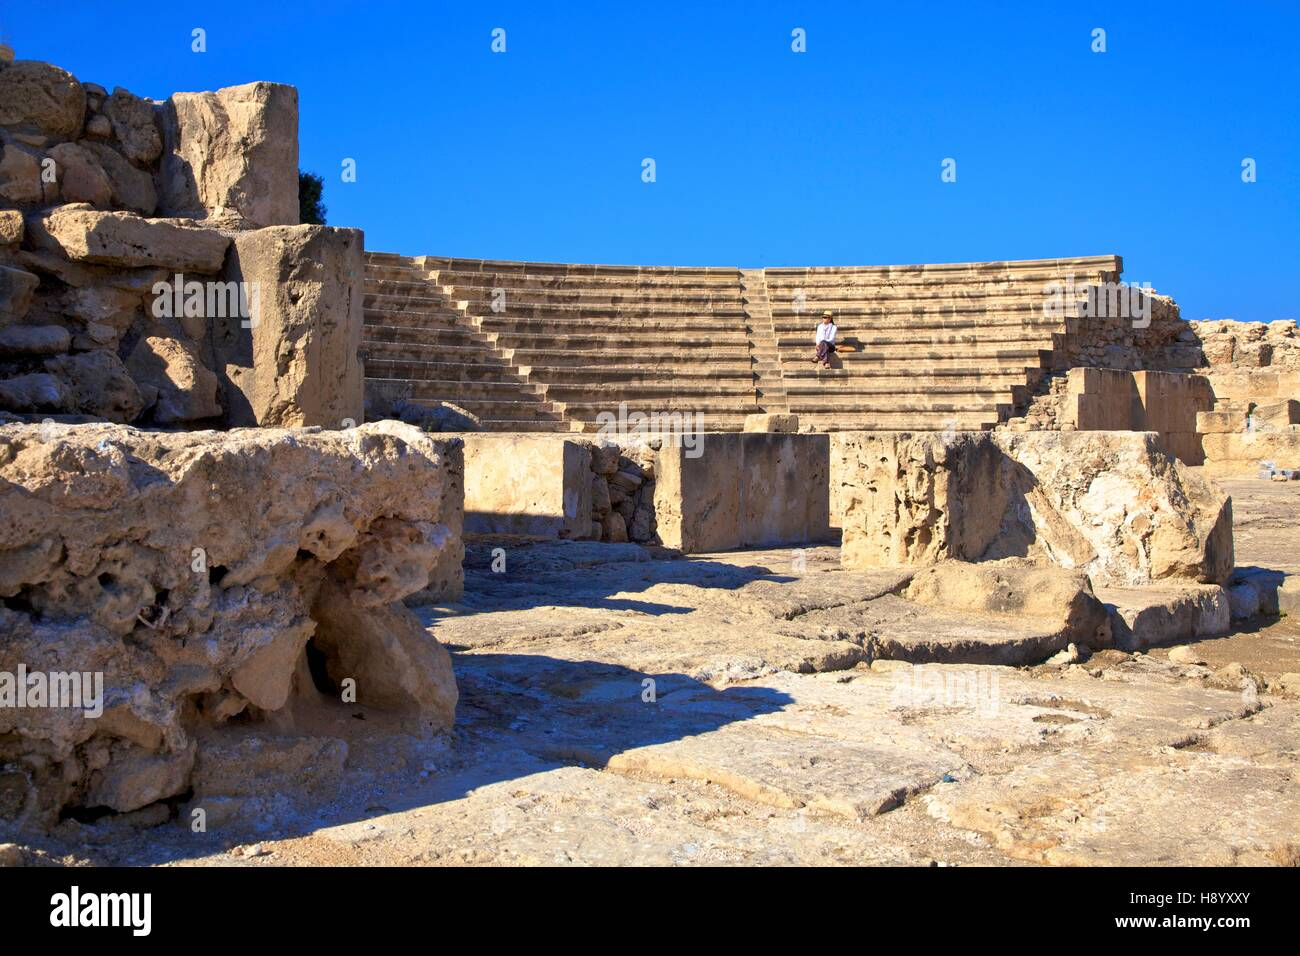 Roman Odeon, Kato Pathos Archaeological Park, Pathos, Cyprus, Eastern Mediterranean Sea - Stock Image